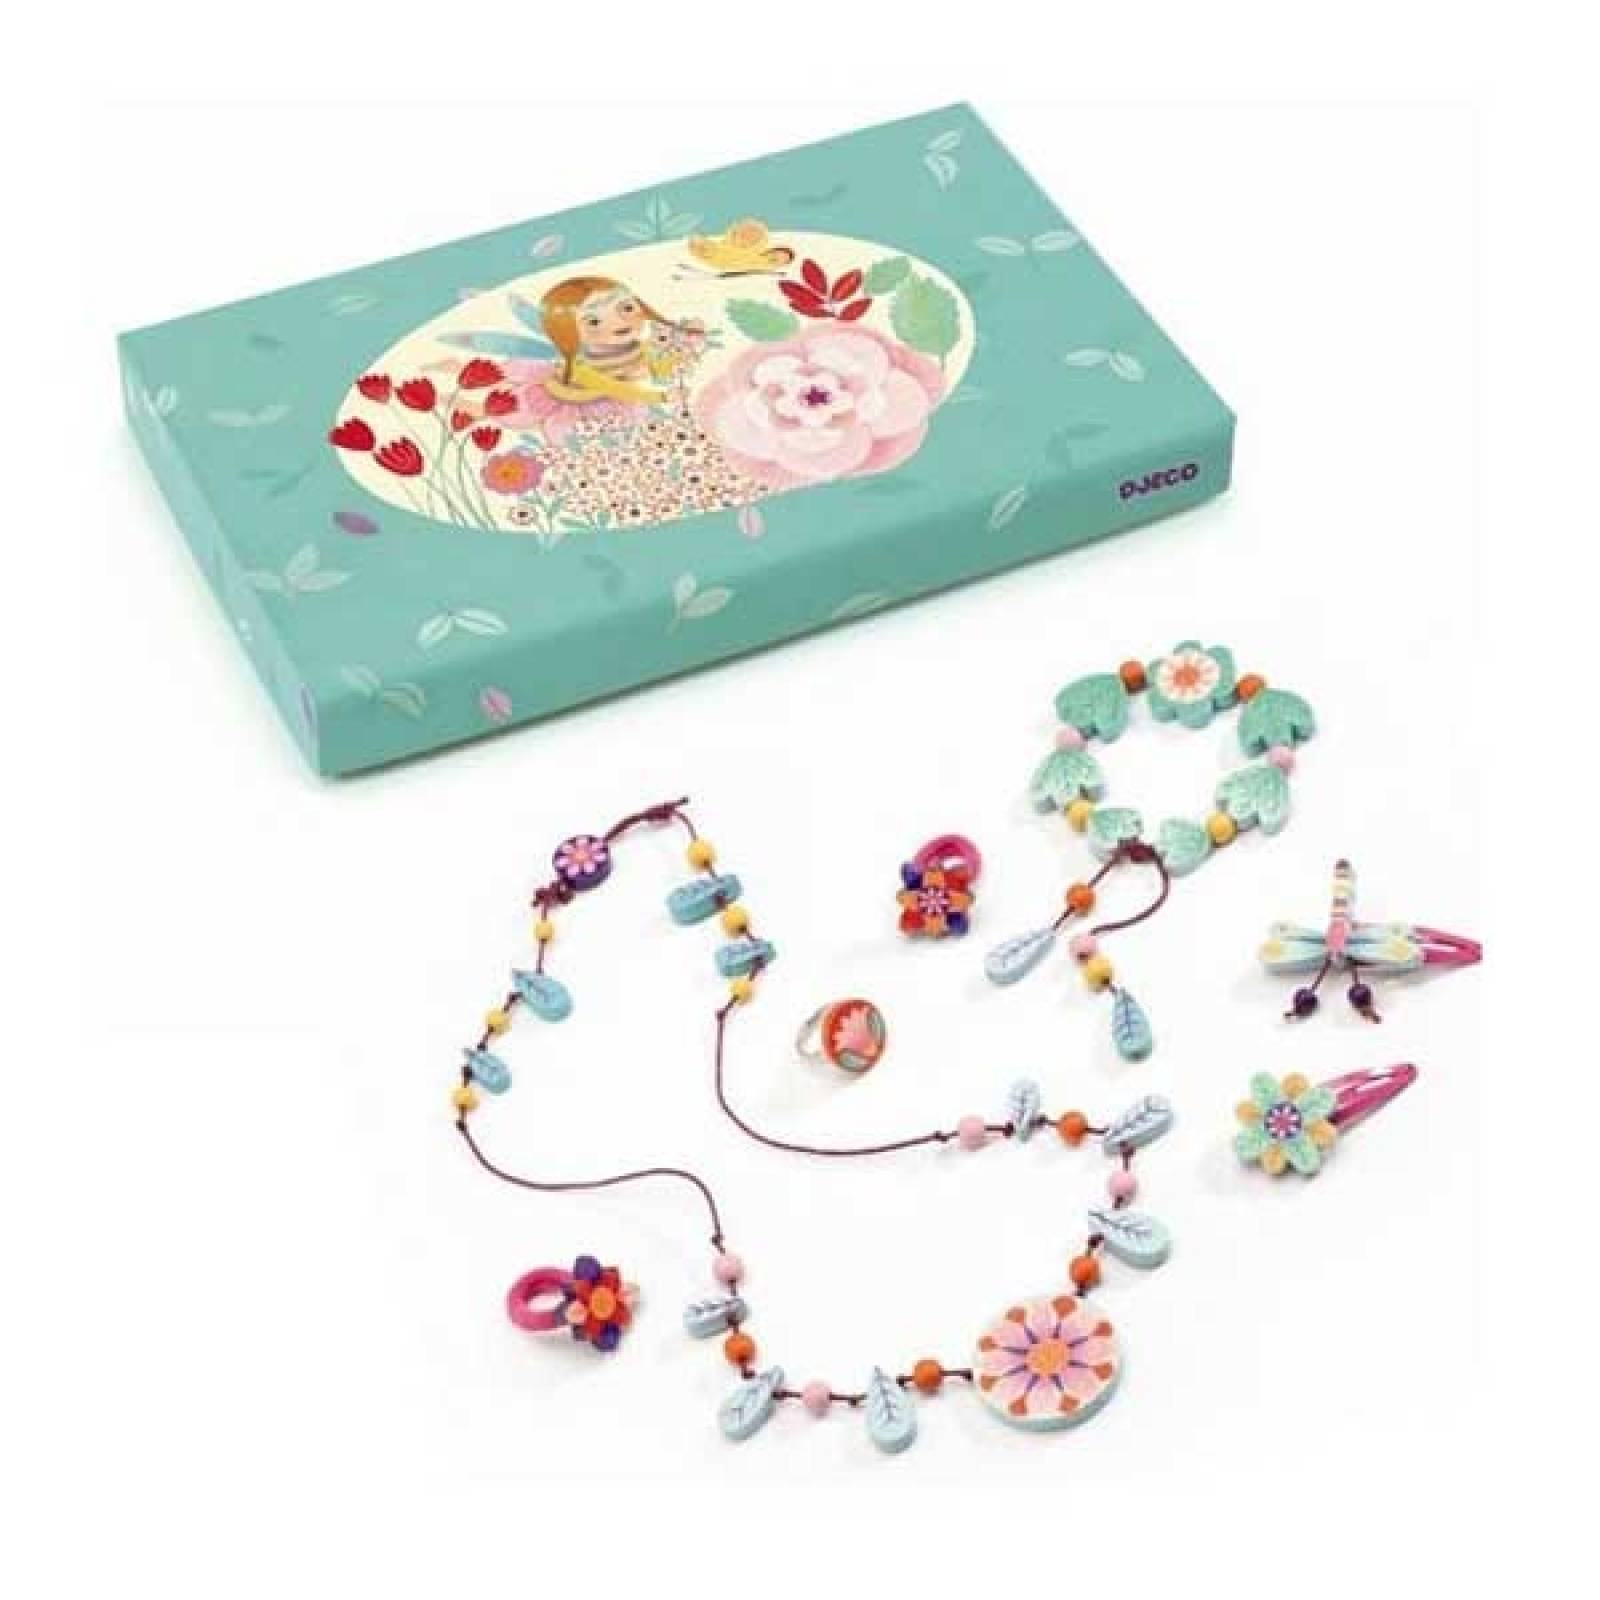 Turquoise Wood Flower Jewellery Set In Pretty Box By Djeco 4yr+